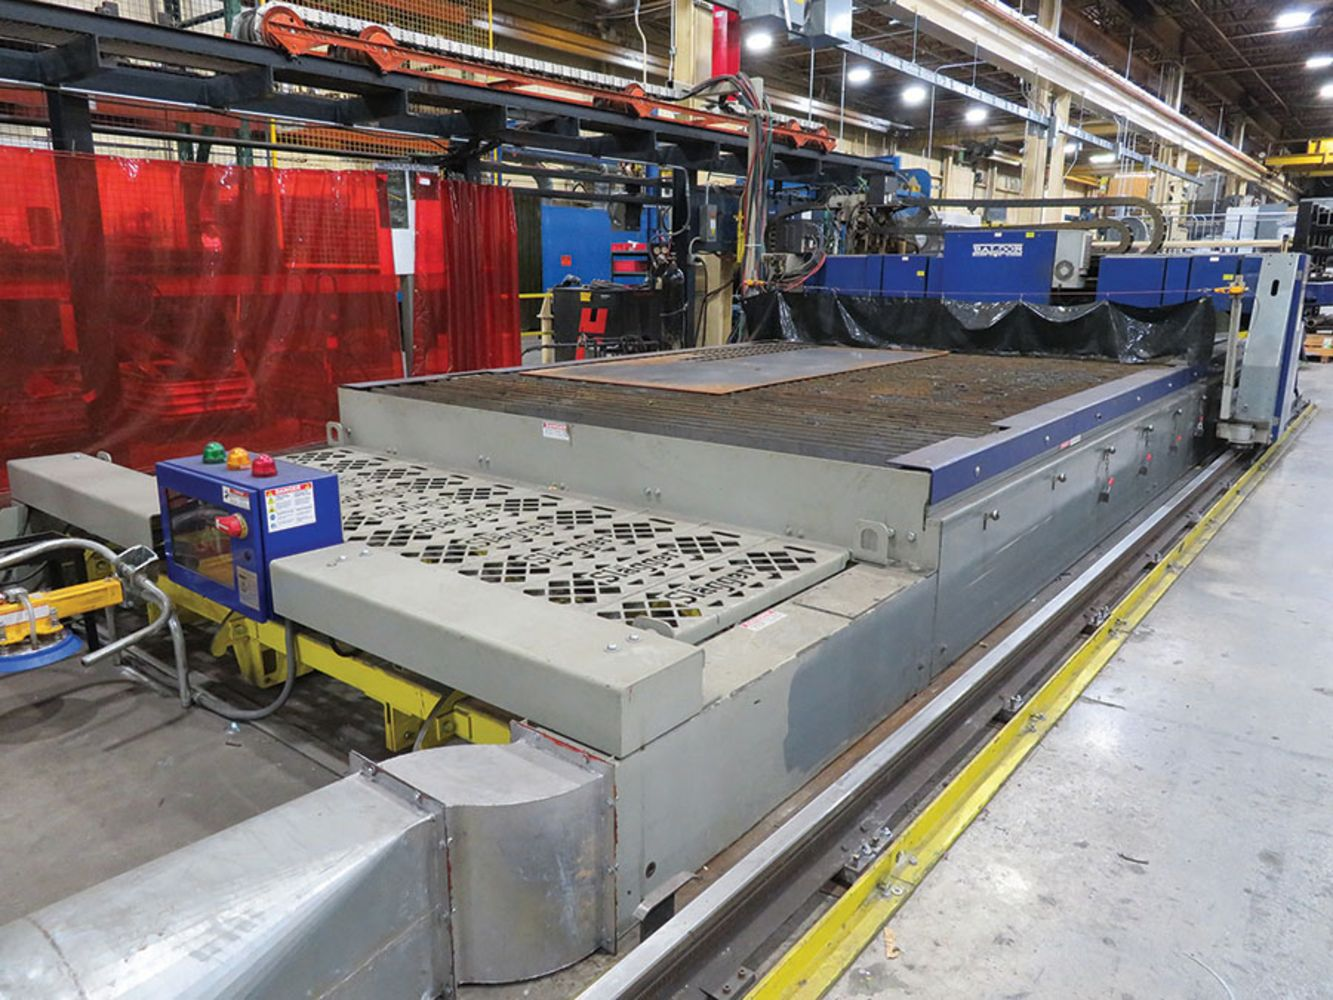 ABB MOTORS AND MECHANICAL INC. - DAY 4 OF 4 - World Class Electric Motor Manufacturer